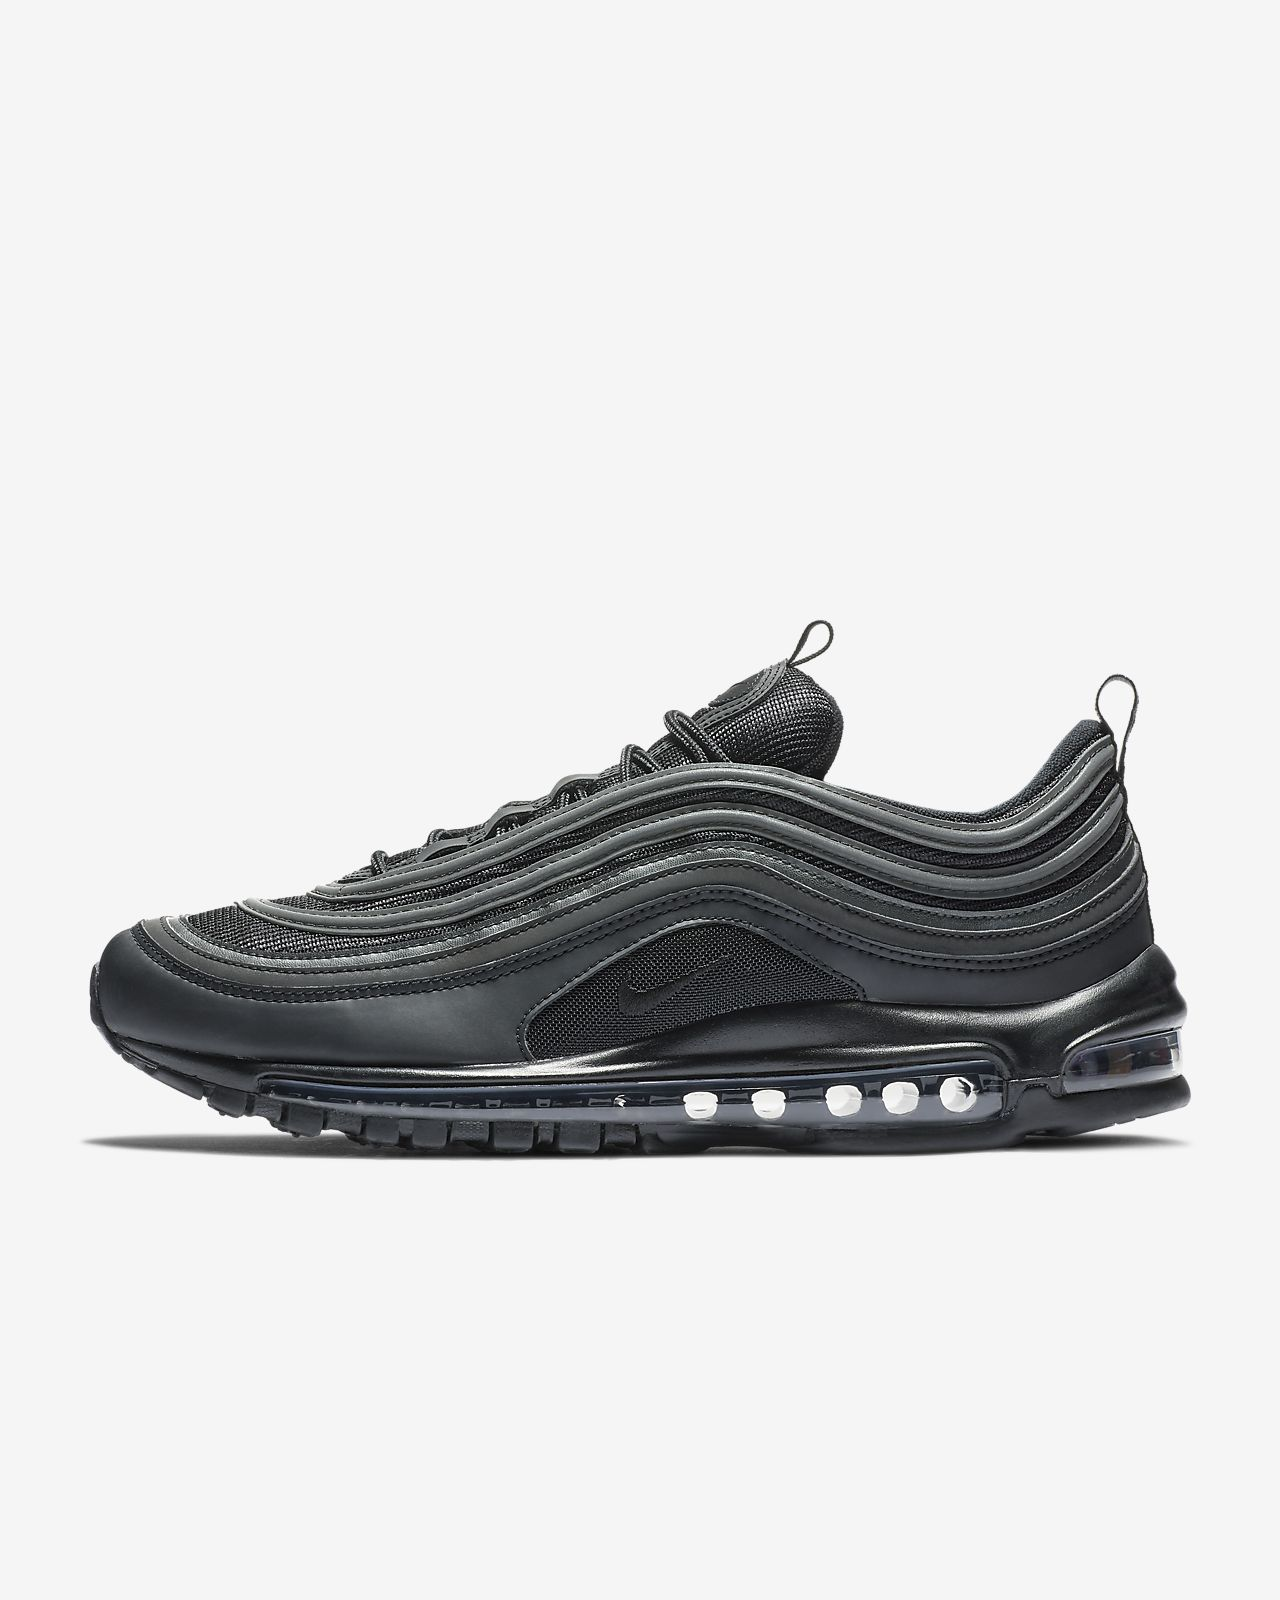 new concept 8602c a0ec3 ... Nike Air Max 97 Herrenschuh